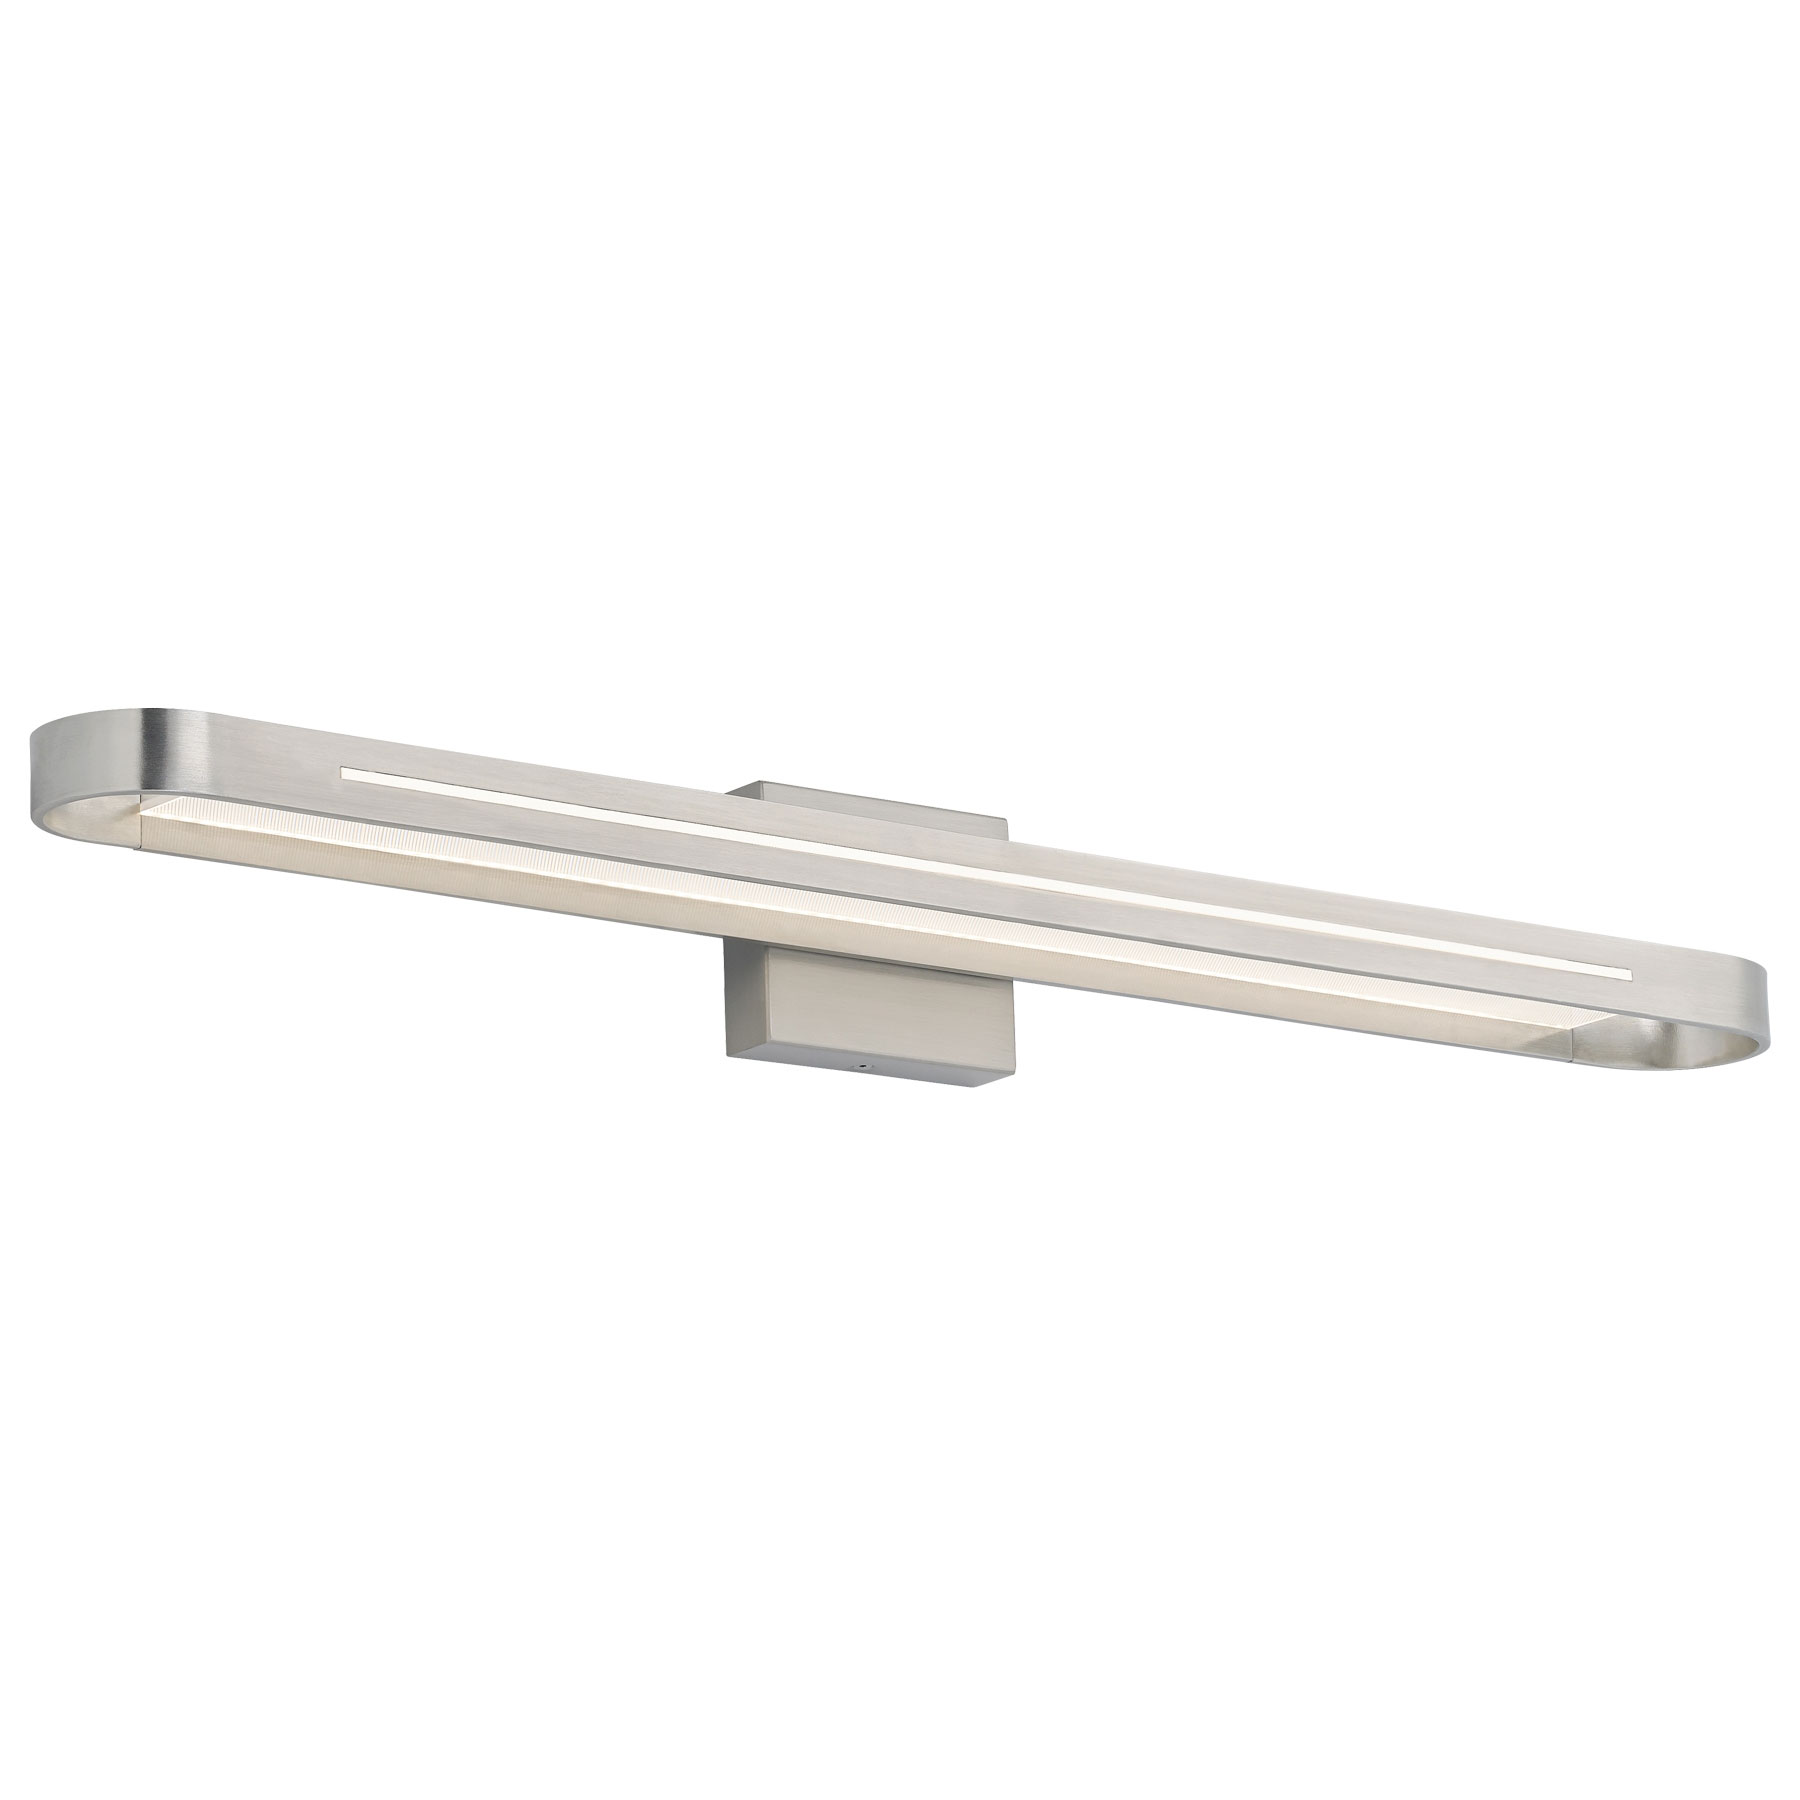 Bath Bar by LBL Lighting | BA868SCLED830